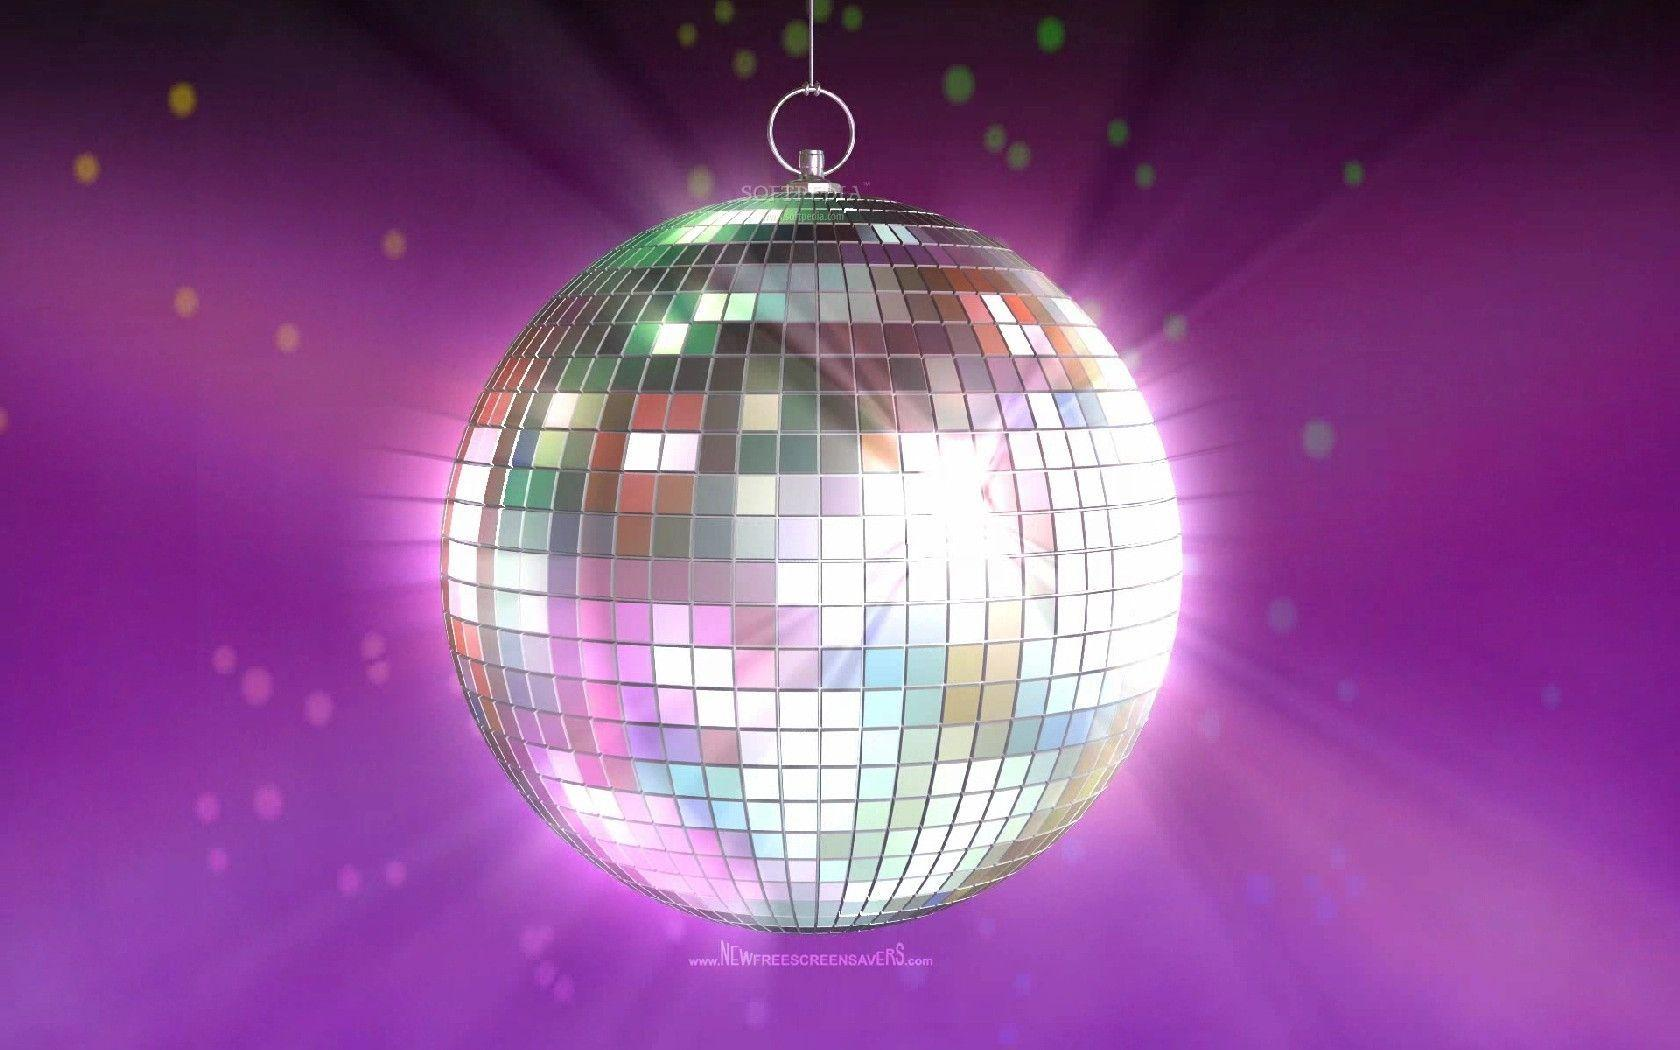 Disco ball wallpapers wallpaper cave for Mirror wallpaper